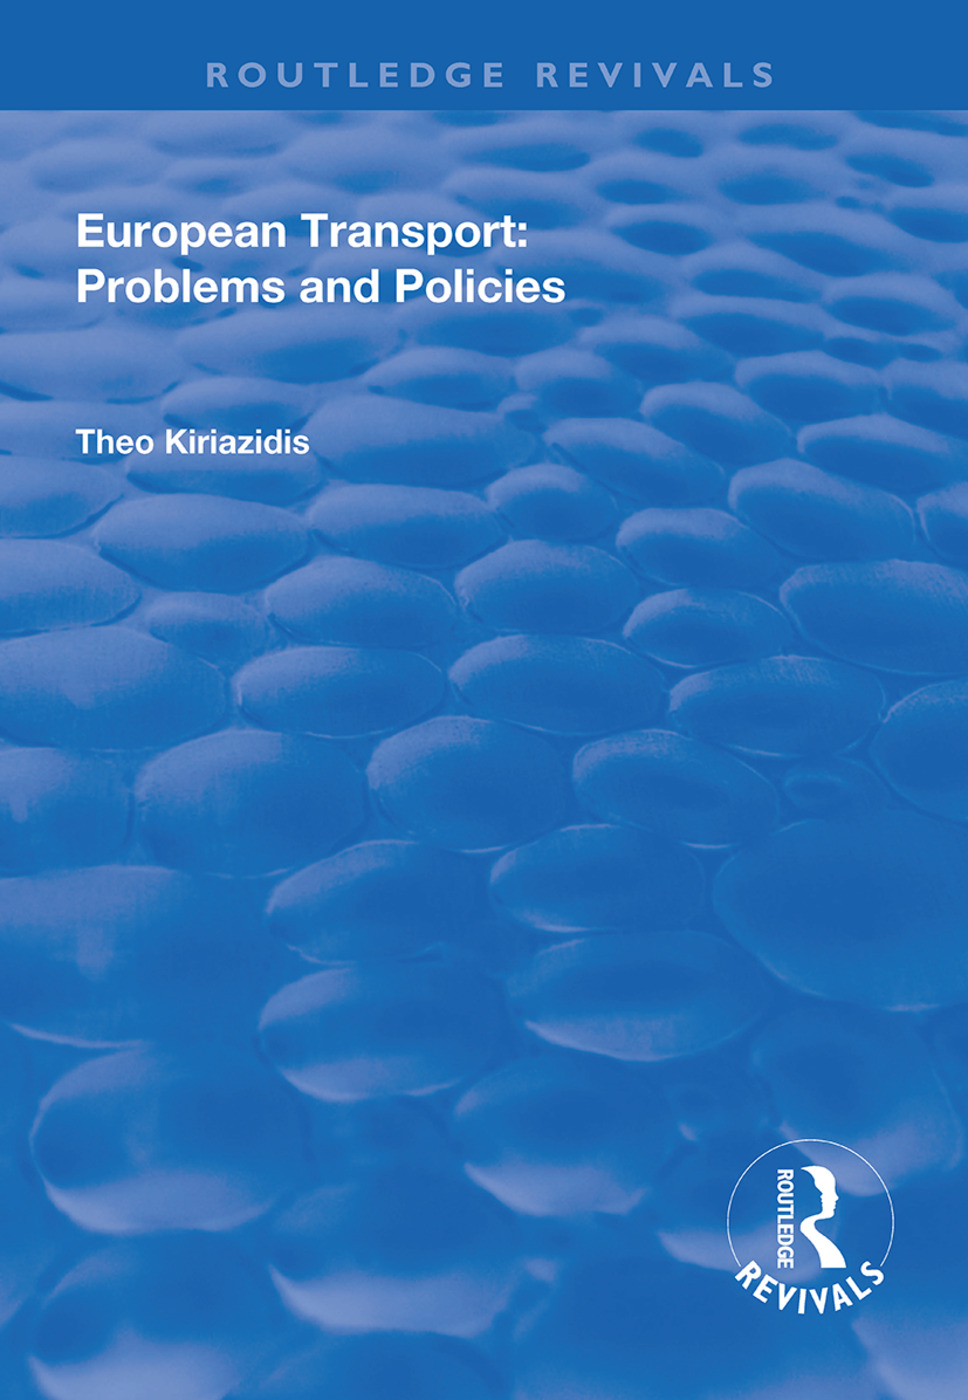 European Transport: Problems and Policies